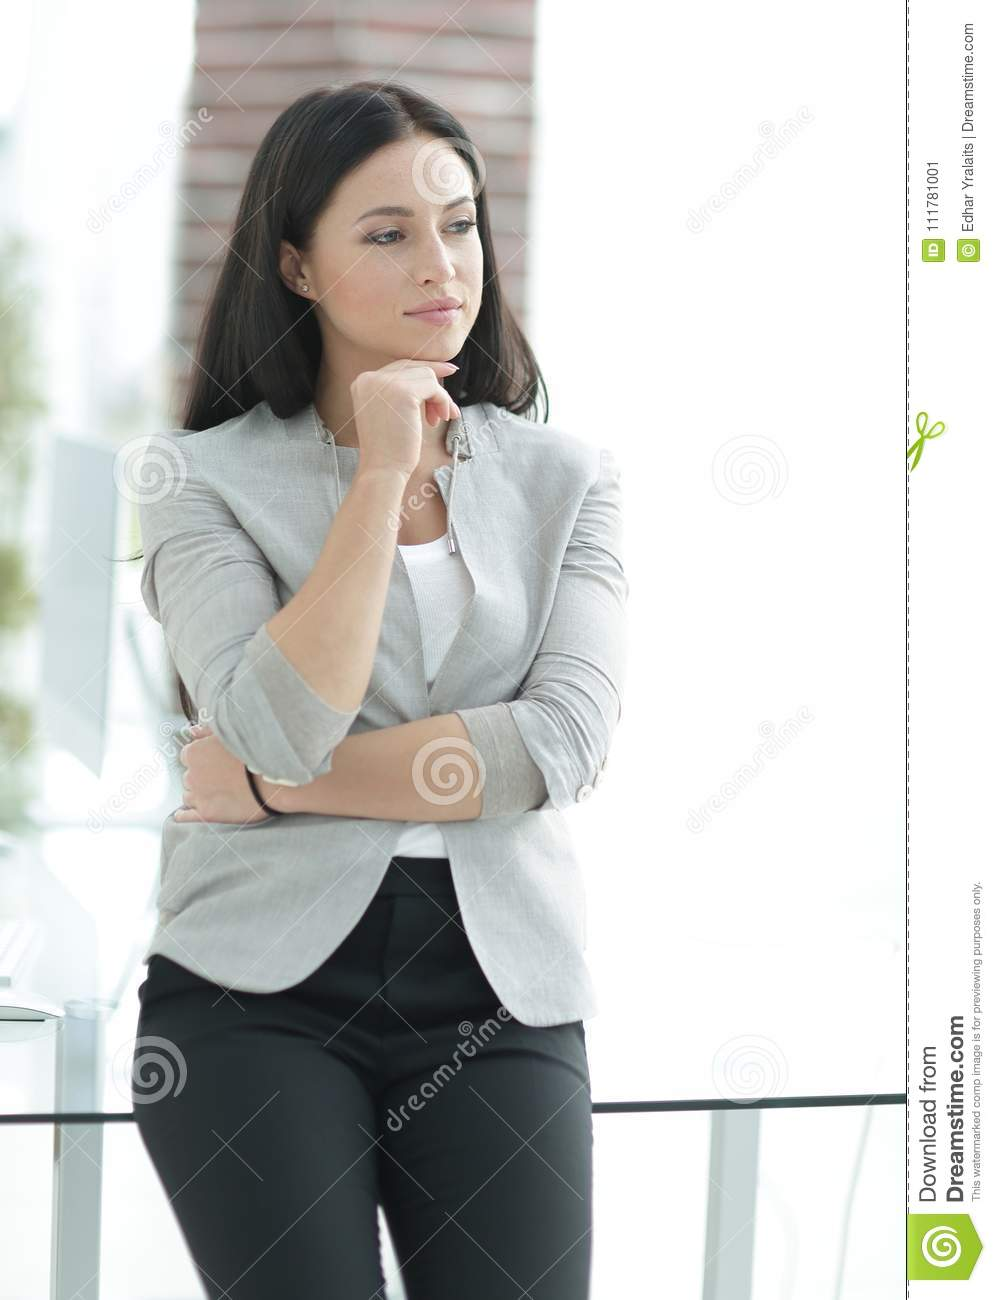 Modern business woman near the window in the office